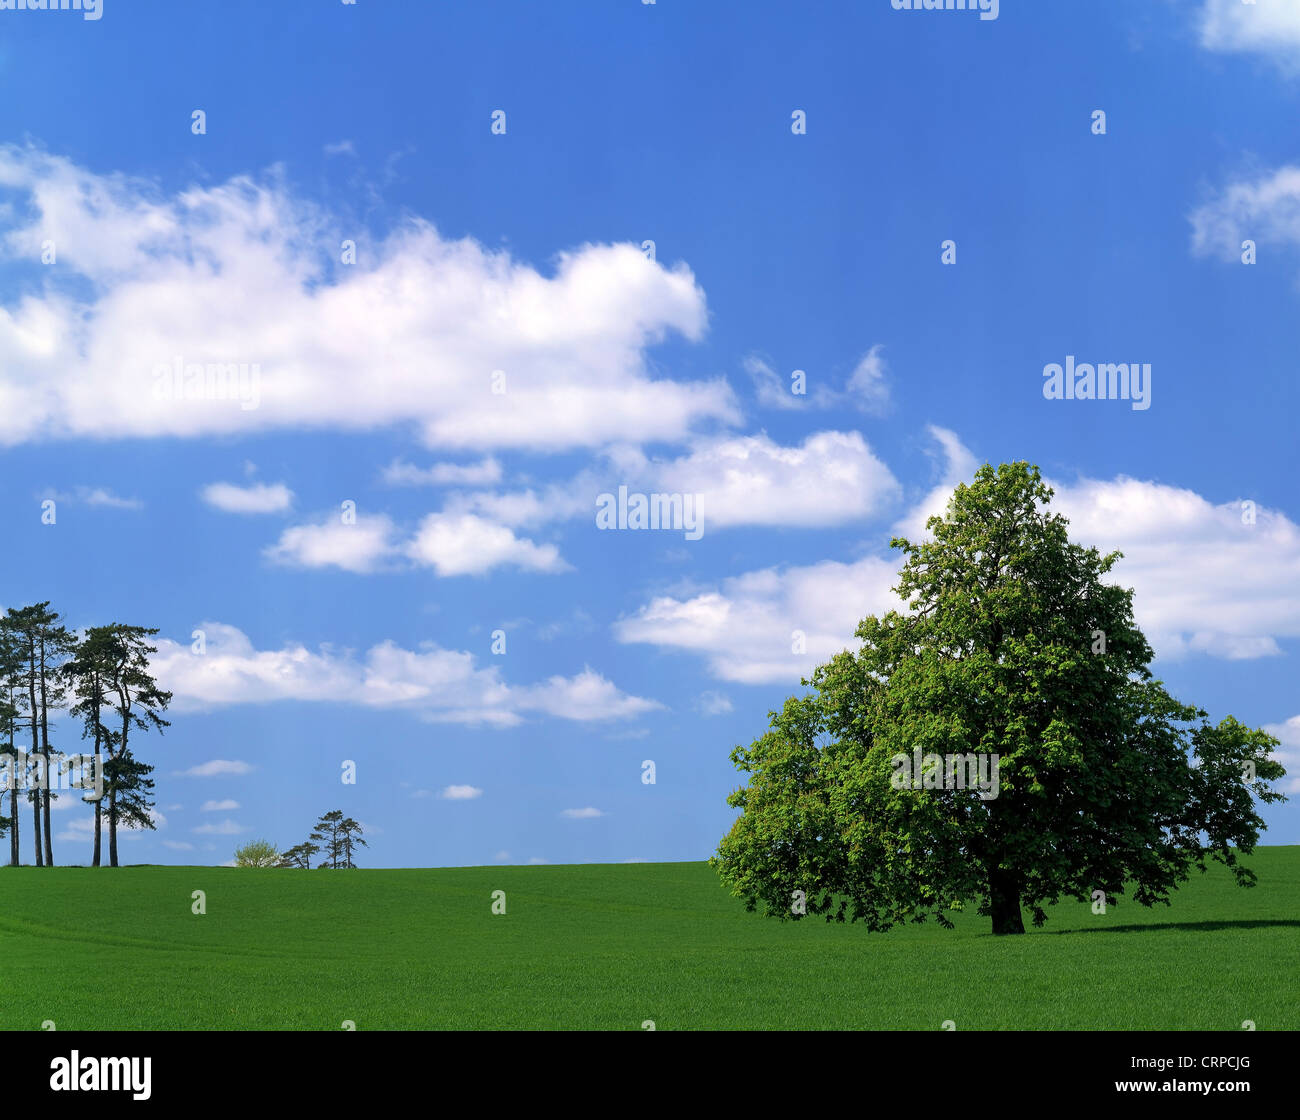 A fertile field adorned with a scattering of trees in rural Shropshire. - Stock Image